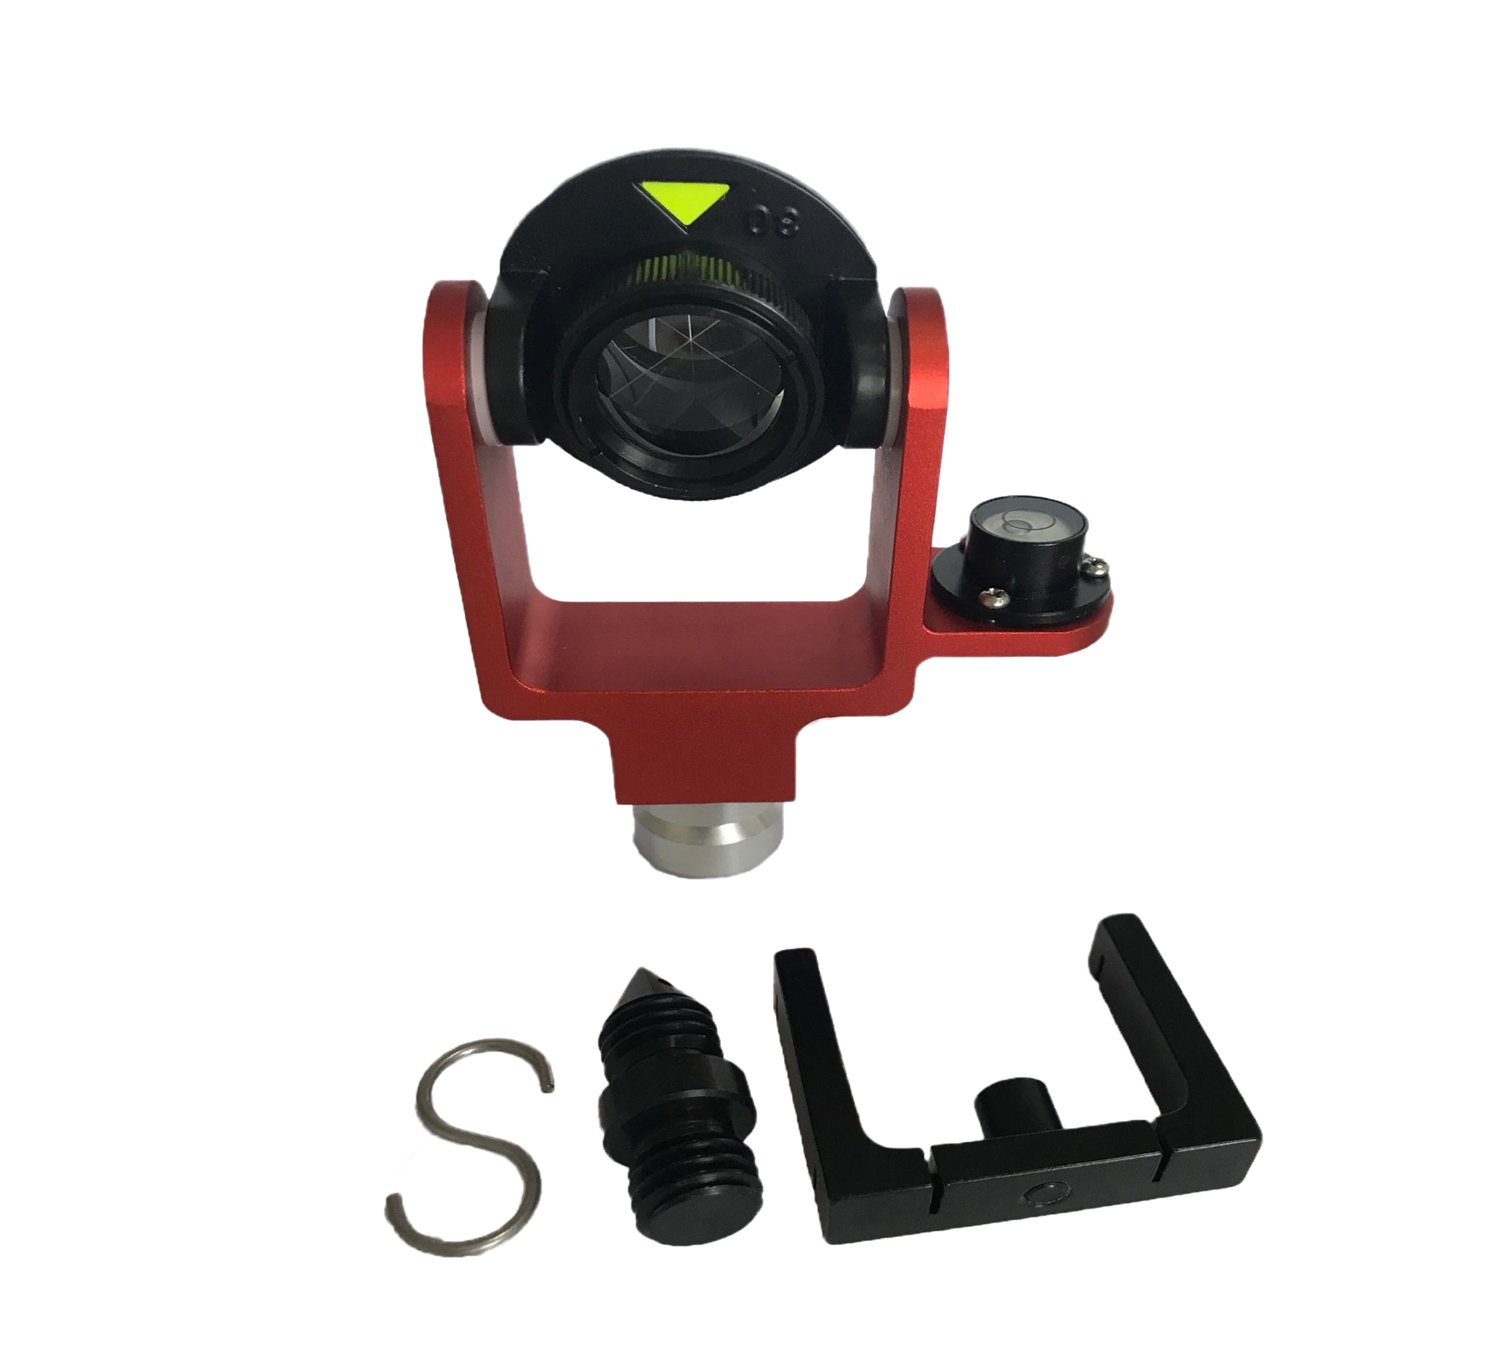 GEOLENI Mini Prism System FDC061-2 For Total Station